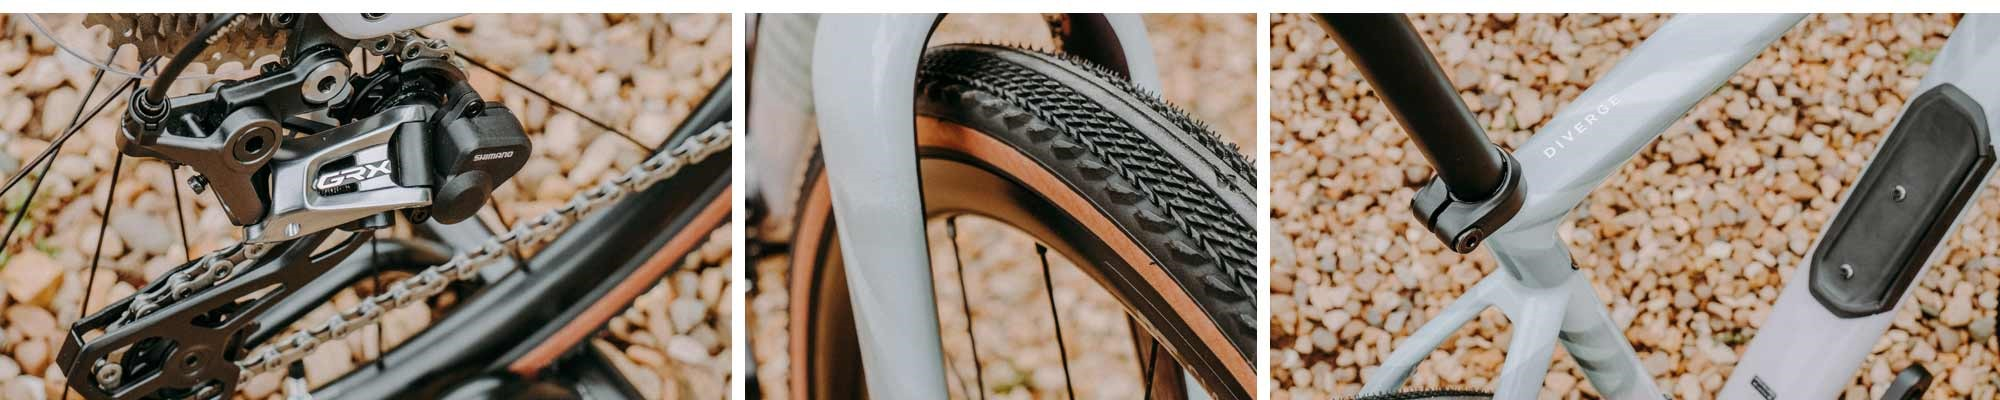 Specialized-Diverge-Gravel-Highlights-1